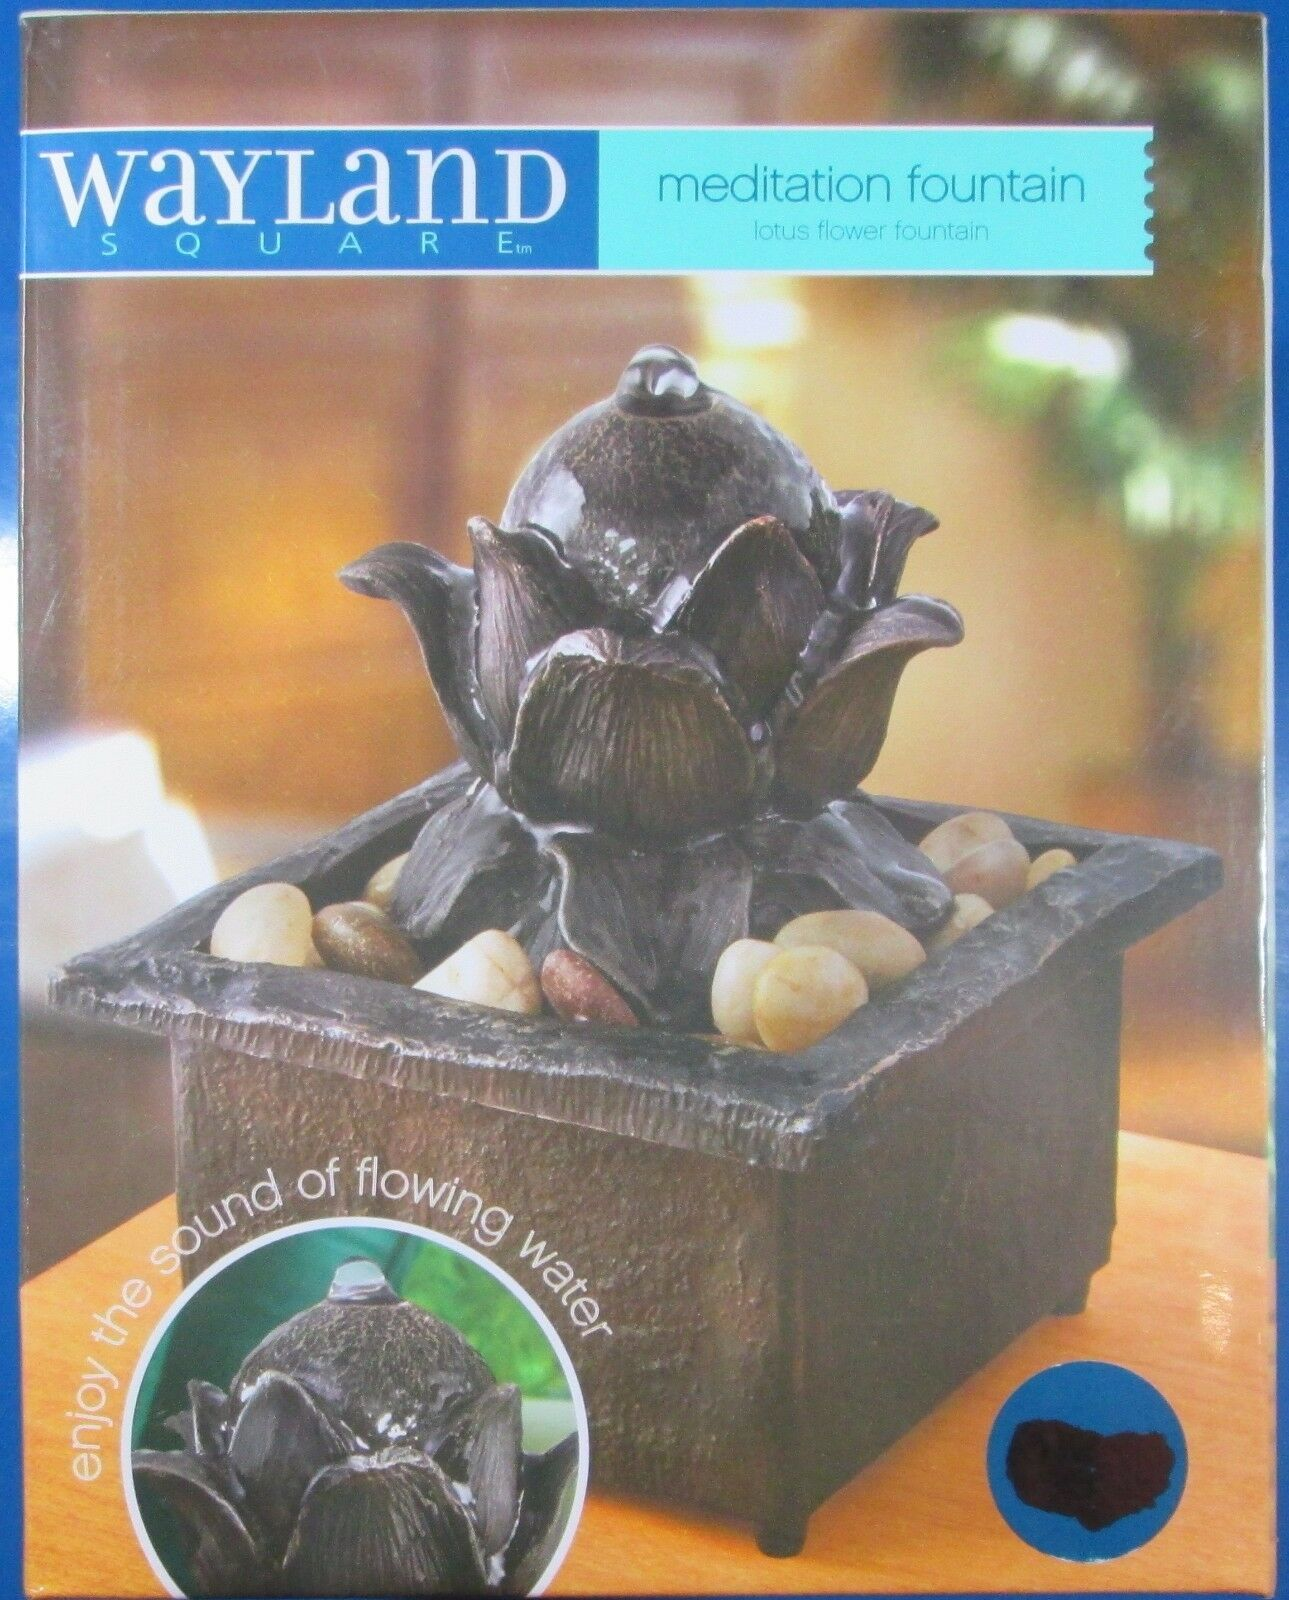 Wayland square lotus flower meditation fountain 1200 picclick wayland square lotus flower meditation fountain 1 of 5only 1 available izmirmasajfo